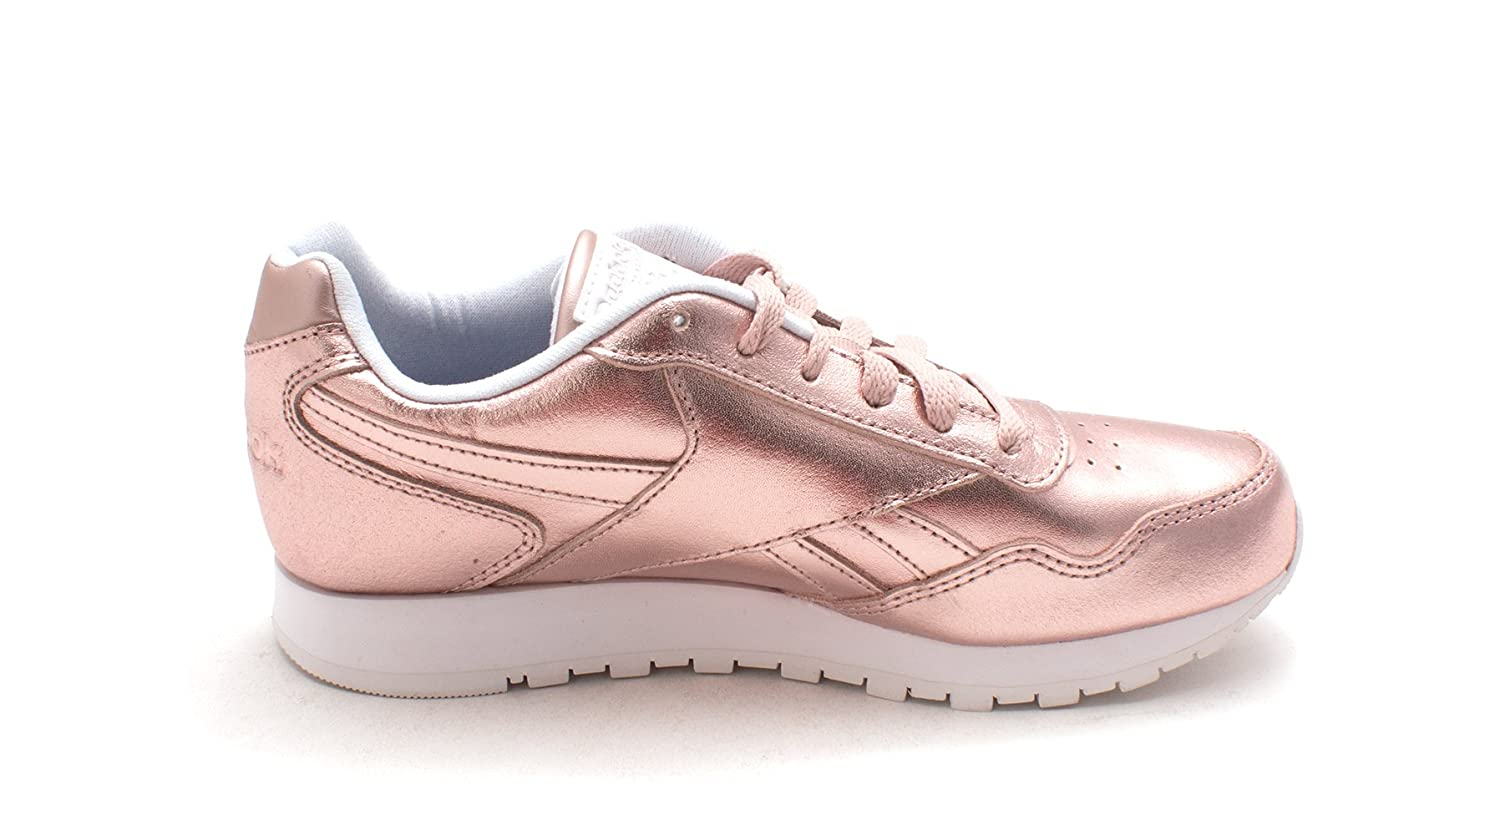 Reebok Women's Cl Harman Run Mtl Sneaker B077V4BFP5 8 B(M) US|Us-rose Gold Metallic/White